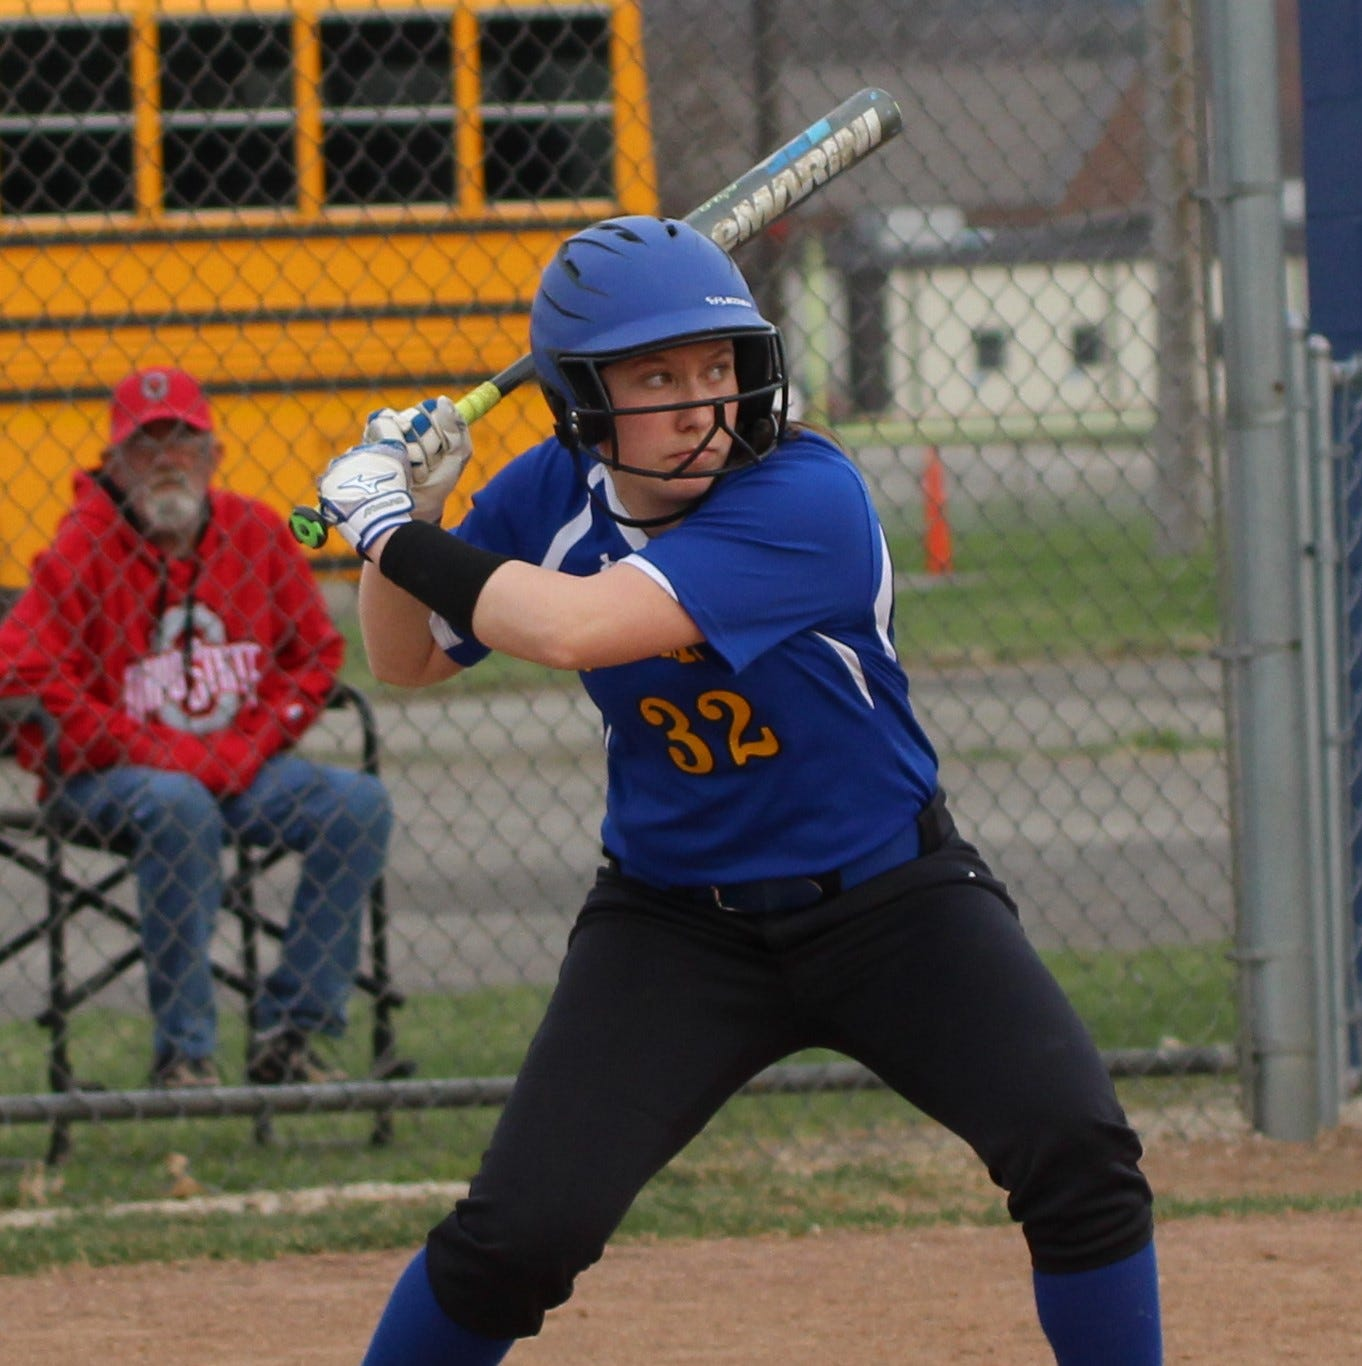 Scoreboard: Bats stay hot in Ontario Lady Warriors win over Lucas Lady Cubs